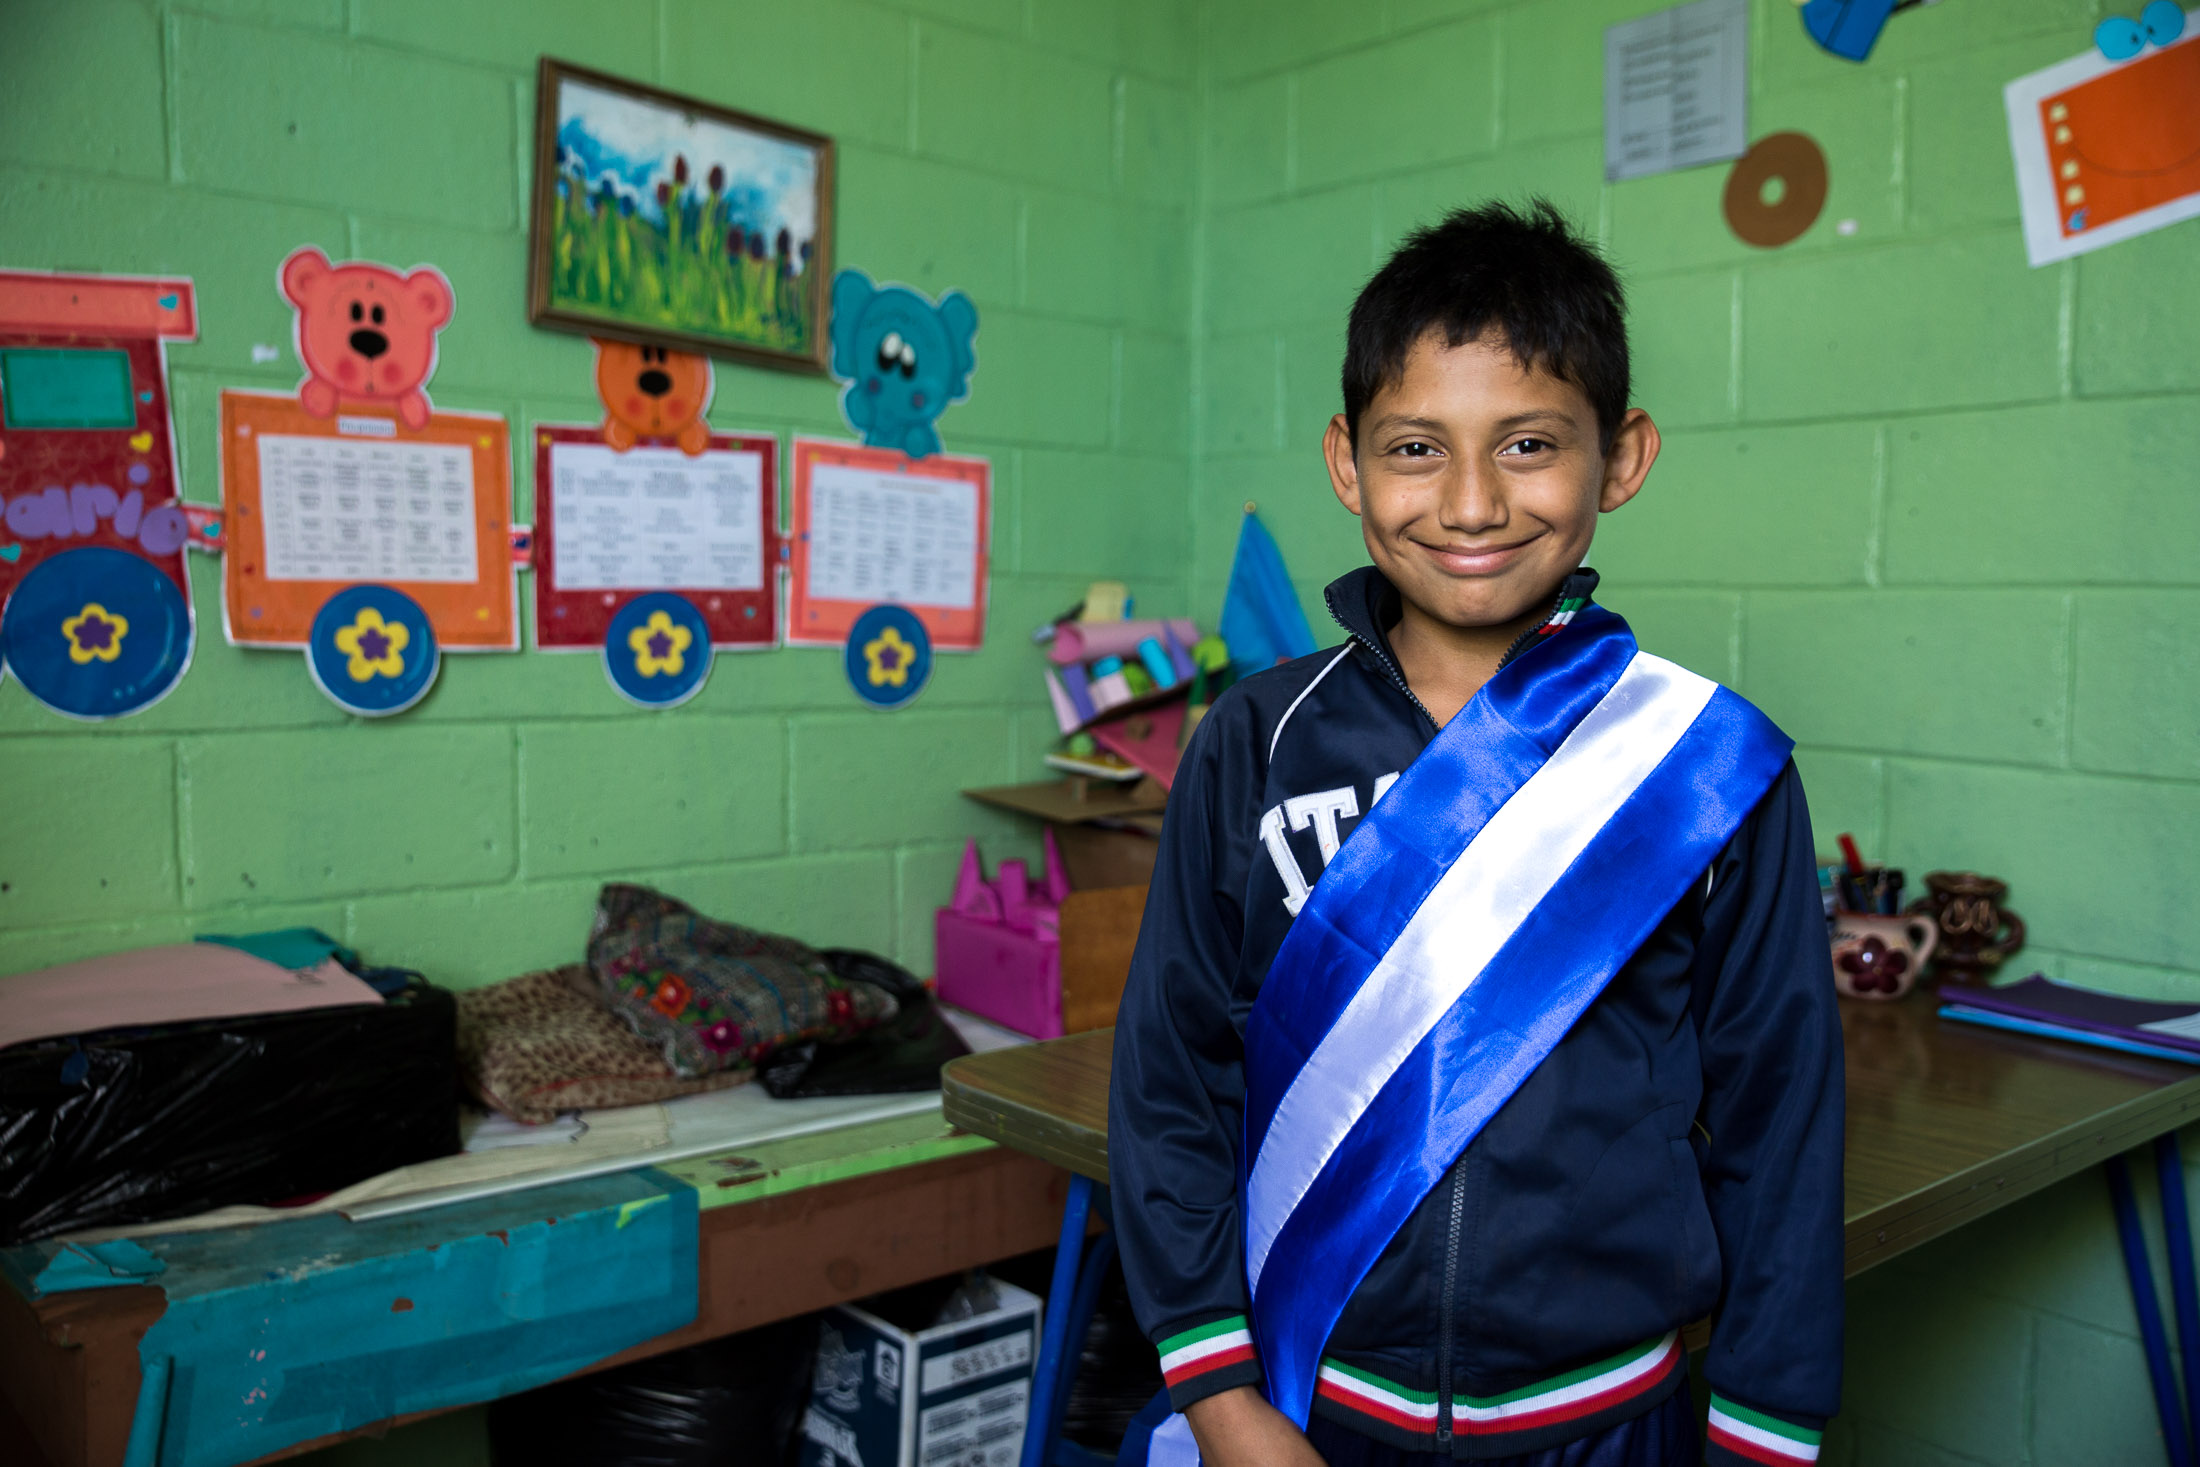 The sash signifies that David is the top student at Amigos de Jesus school